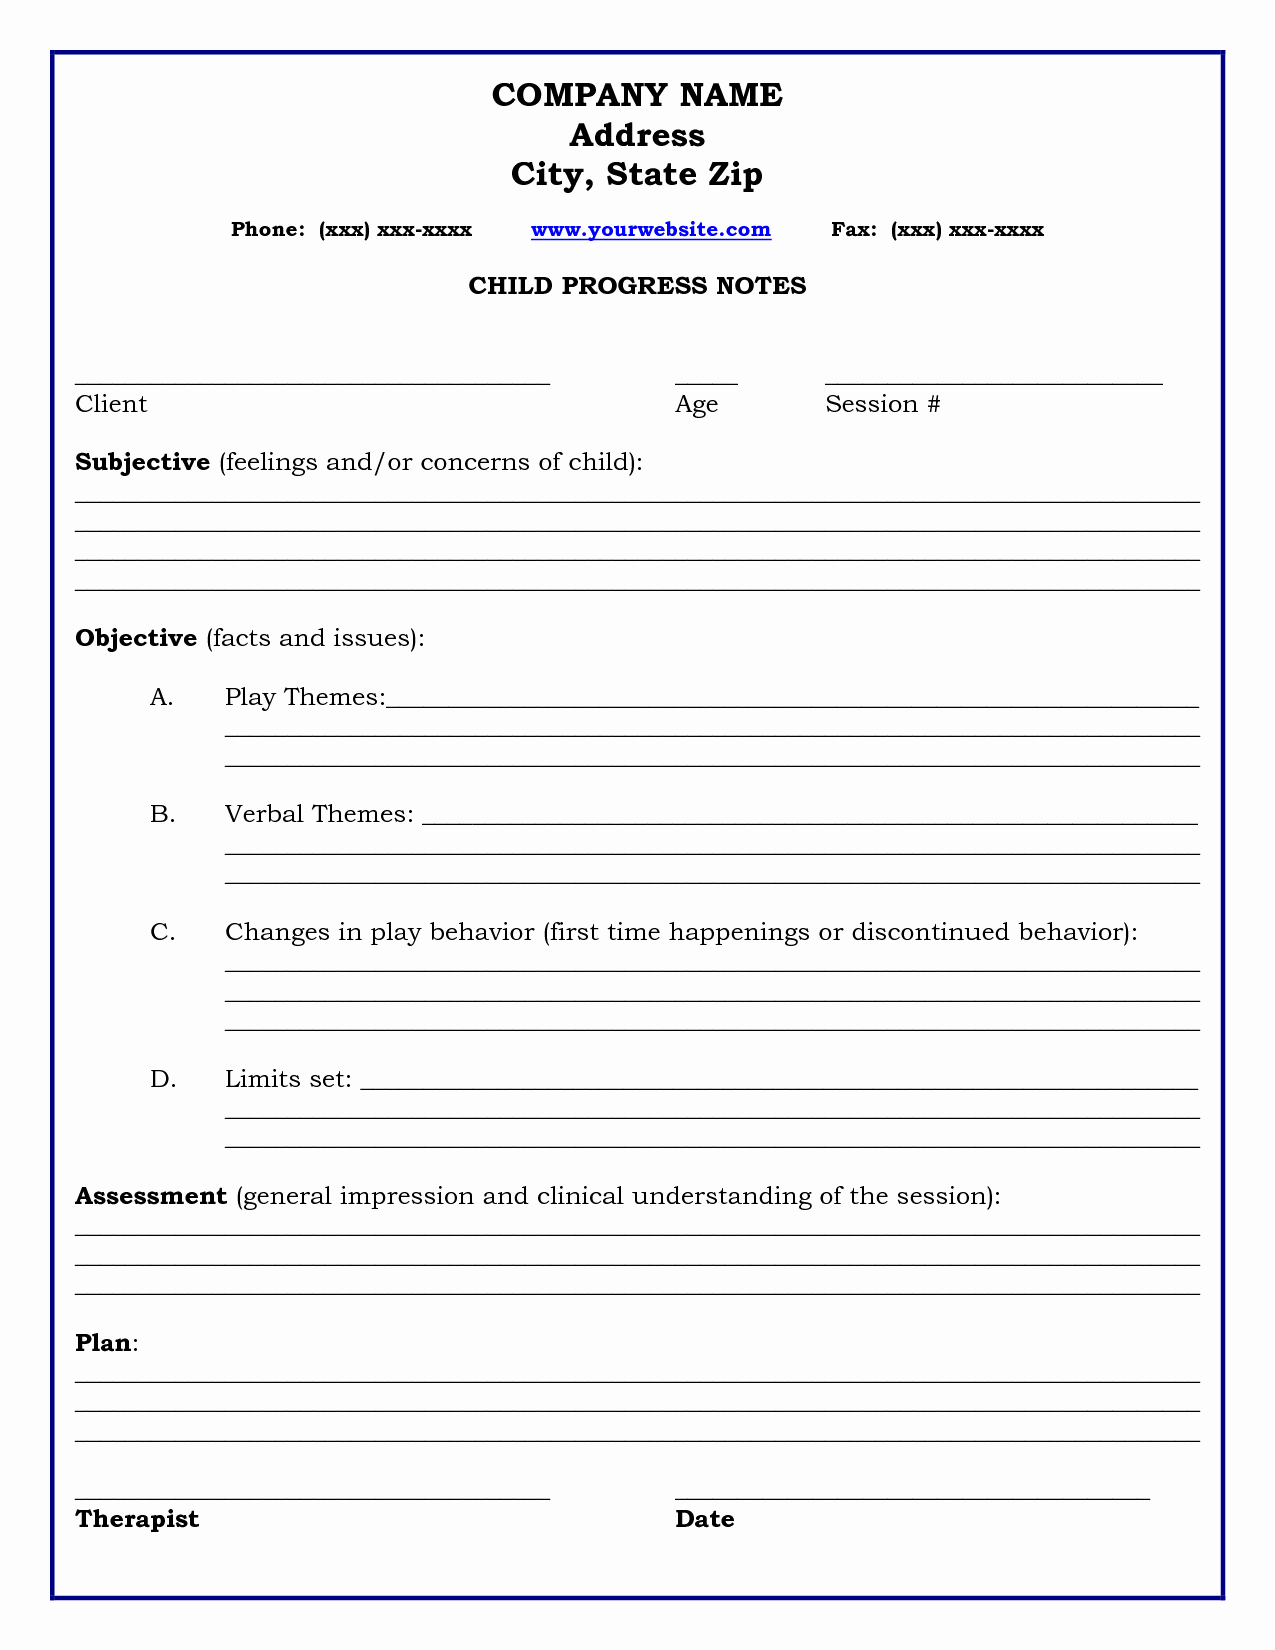 Group therapy Note Template Elegant therapy Progress Note Template Professional Resources Pinterest